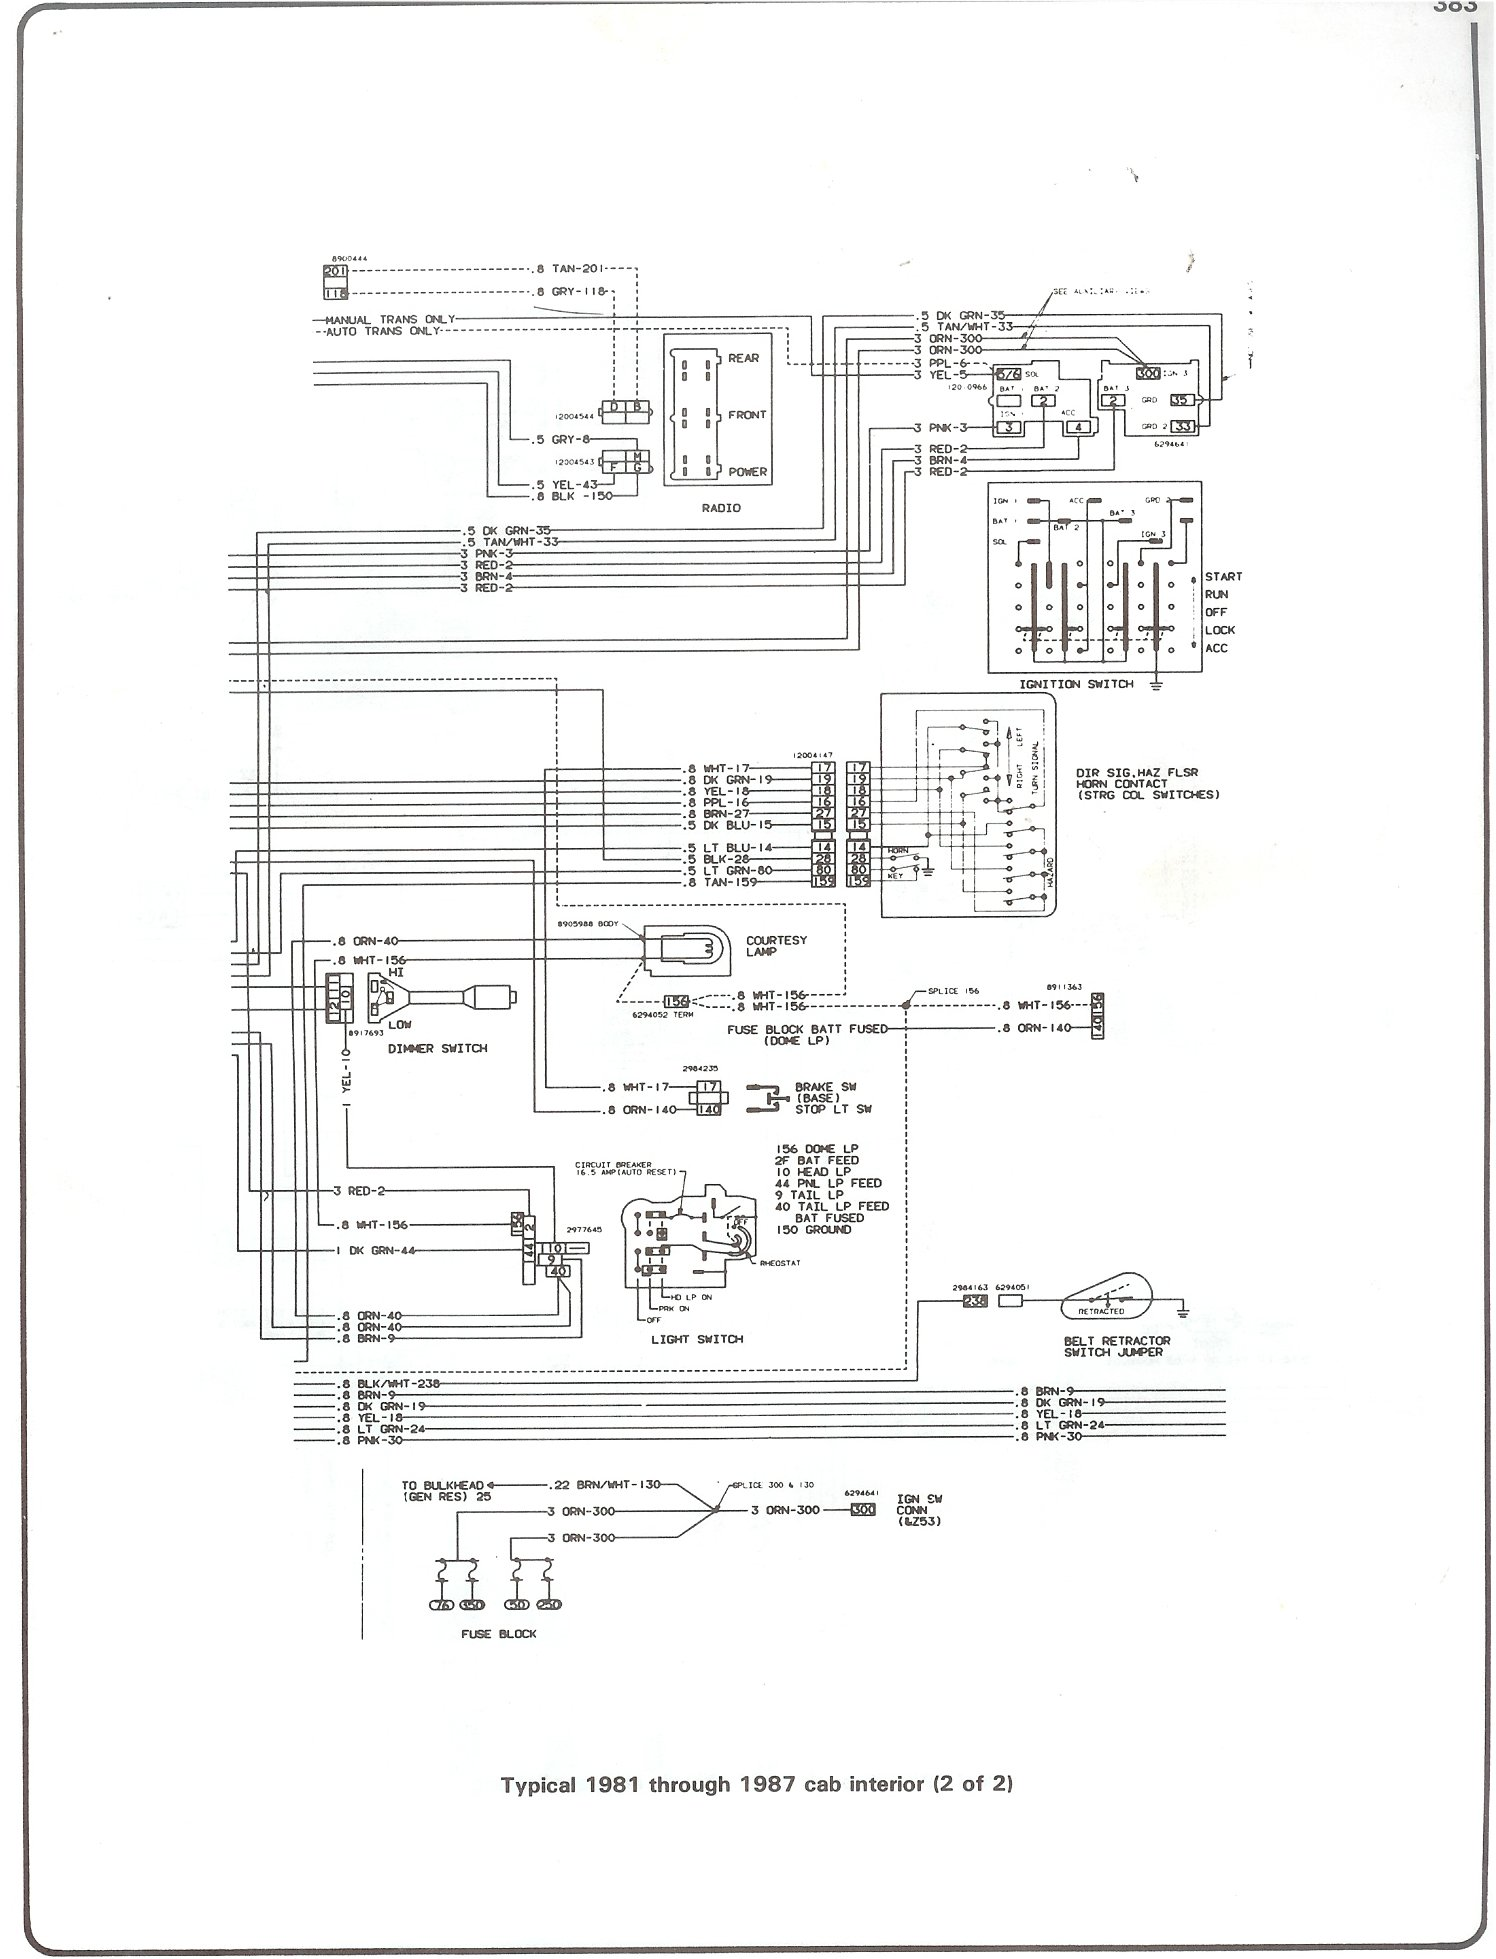 hight resolution of 1987 gmc wiring diagram wiring diagram home 1987 gmc sierra fuel pump wiring diagram 1987 gmc wiring diagram